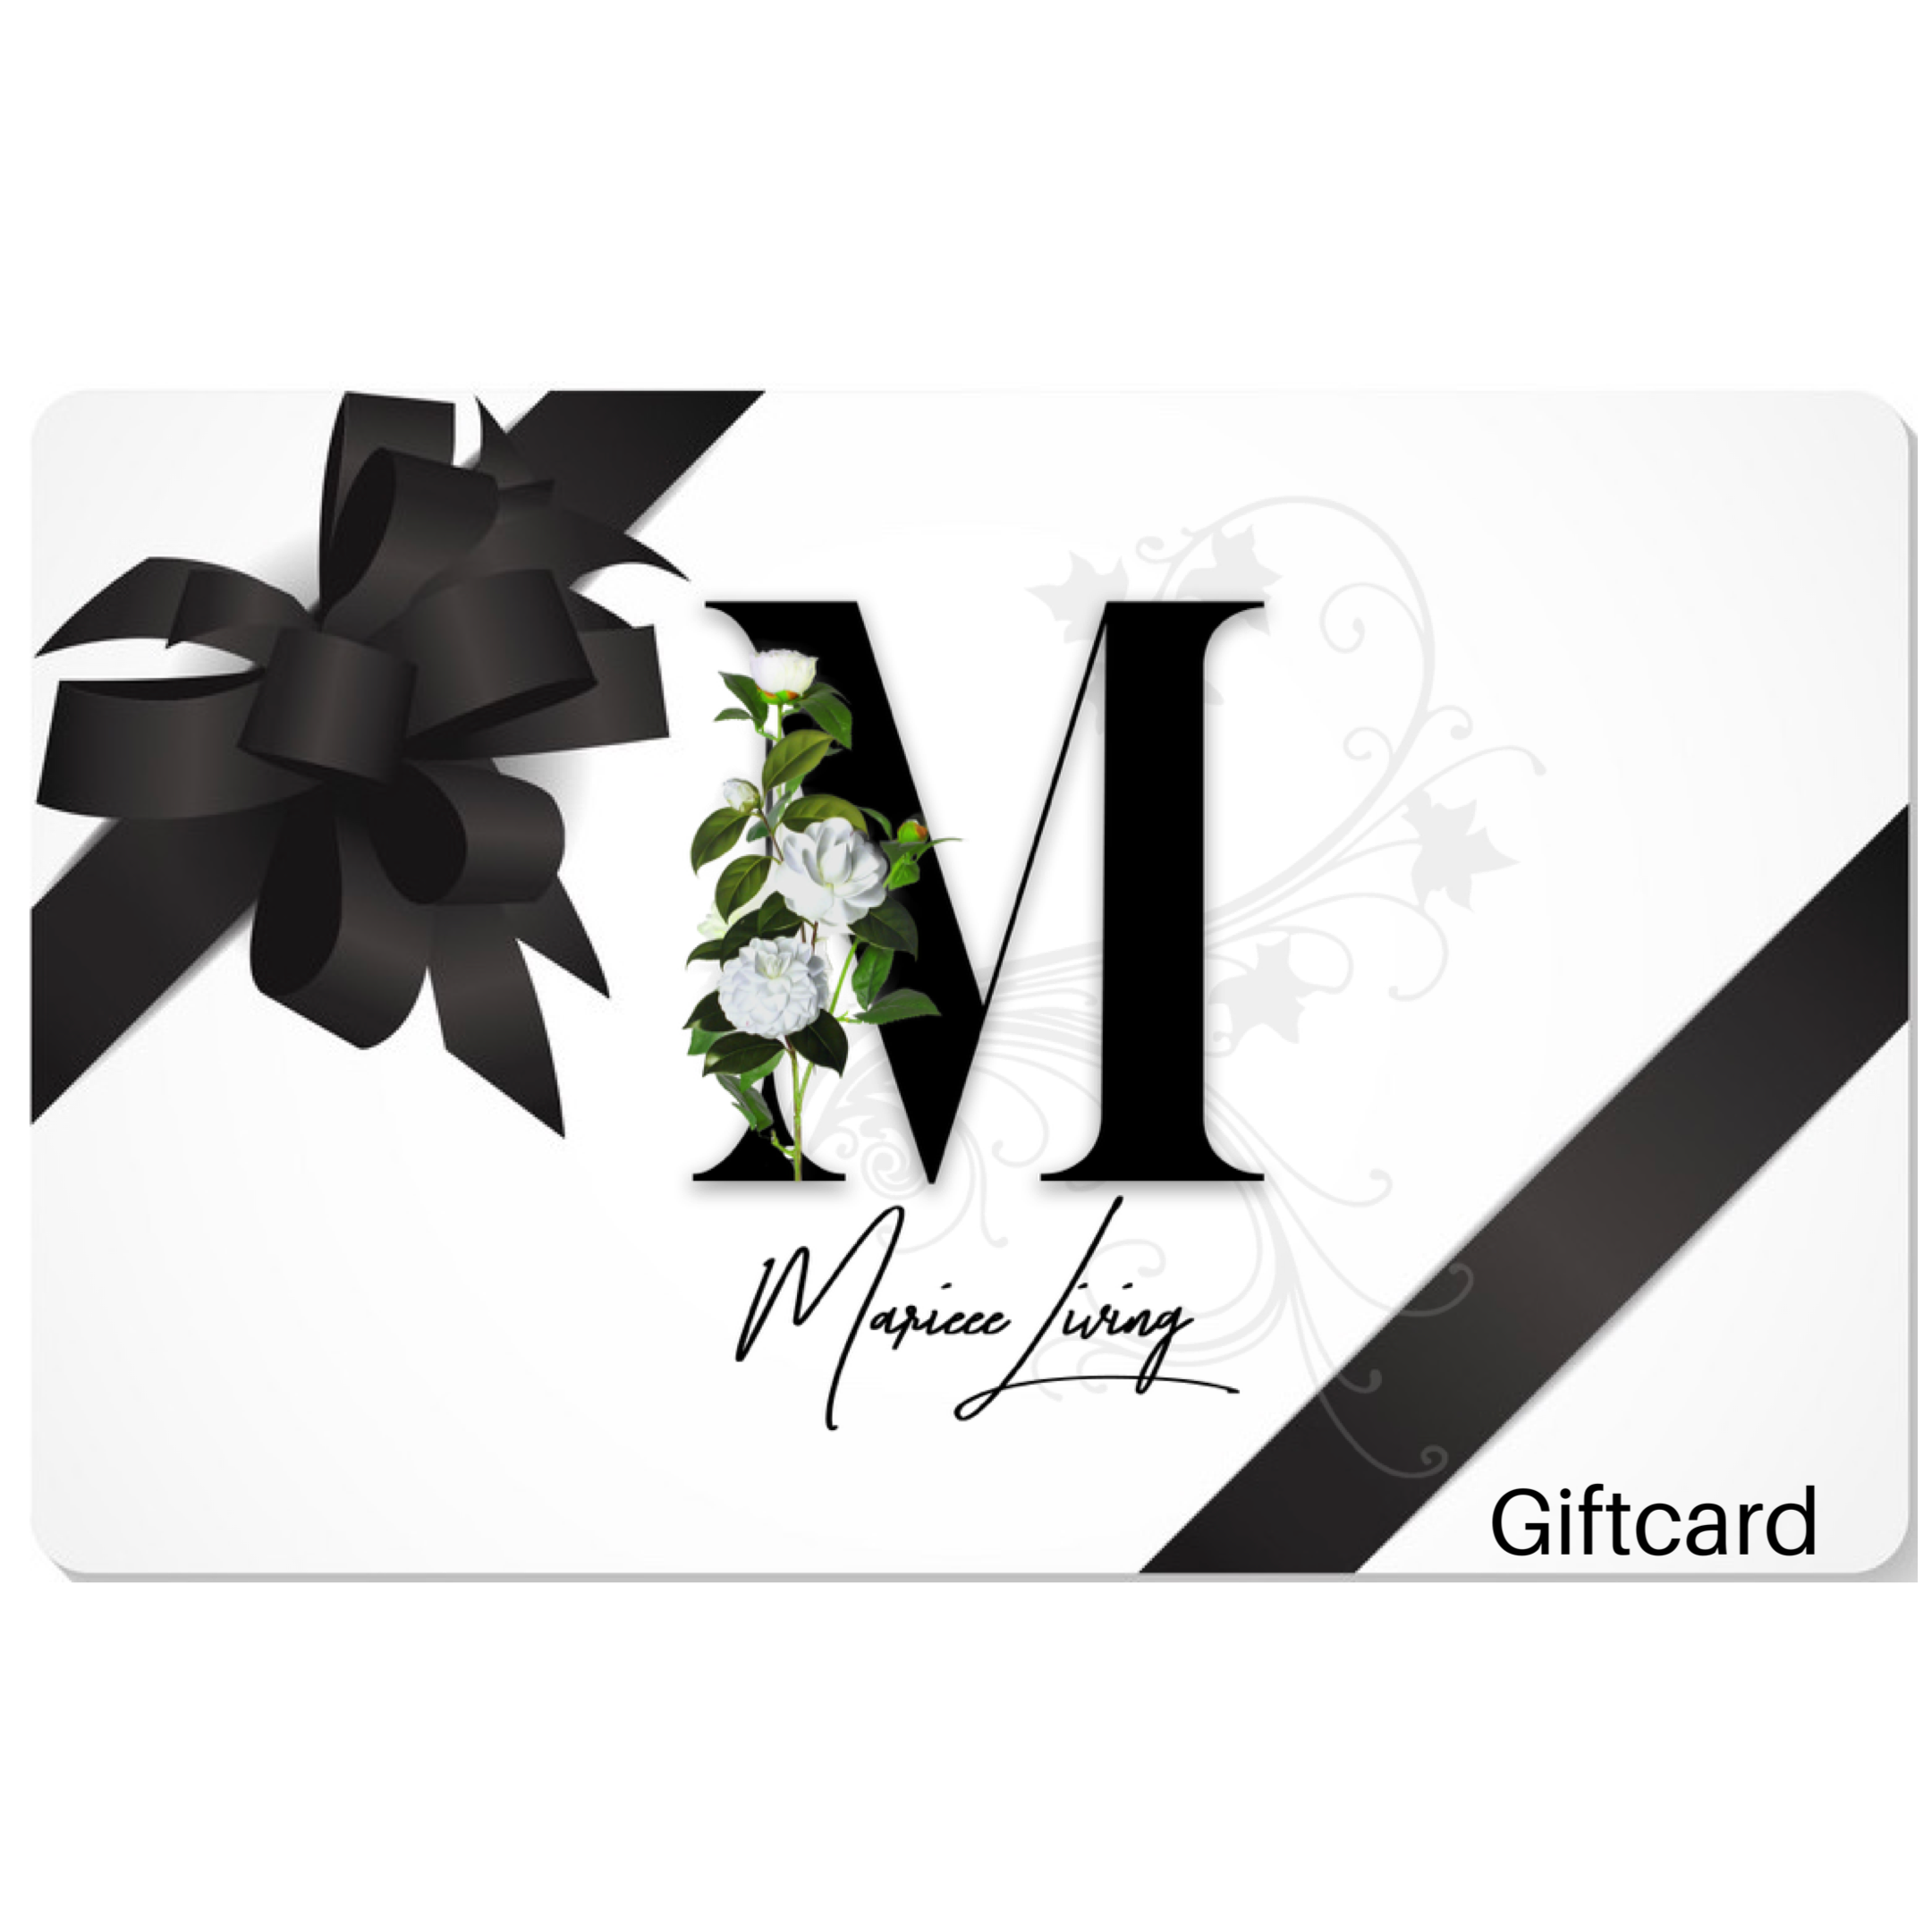 The ML Giftcard